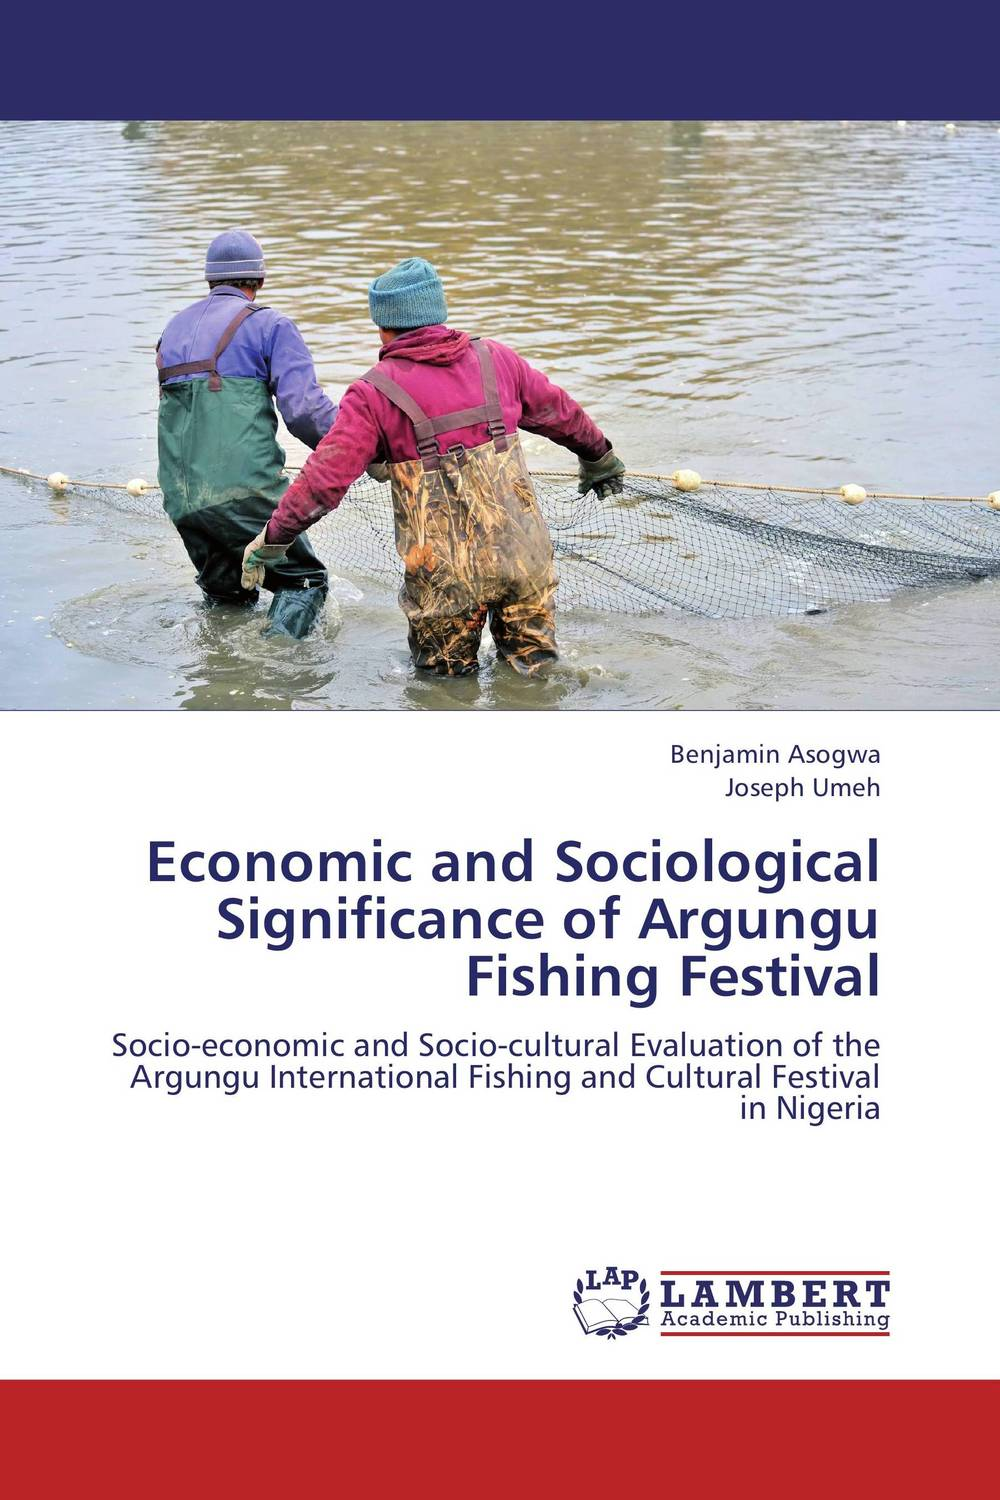 Economic and Sociological Significance of Argungu Fishing Festival